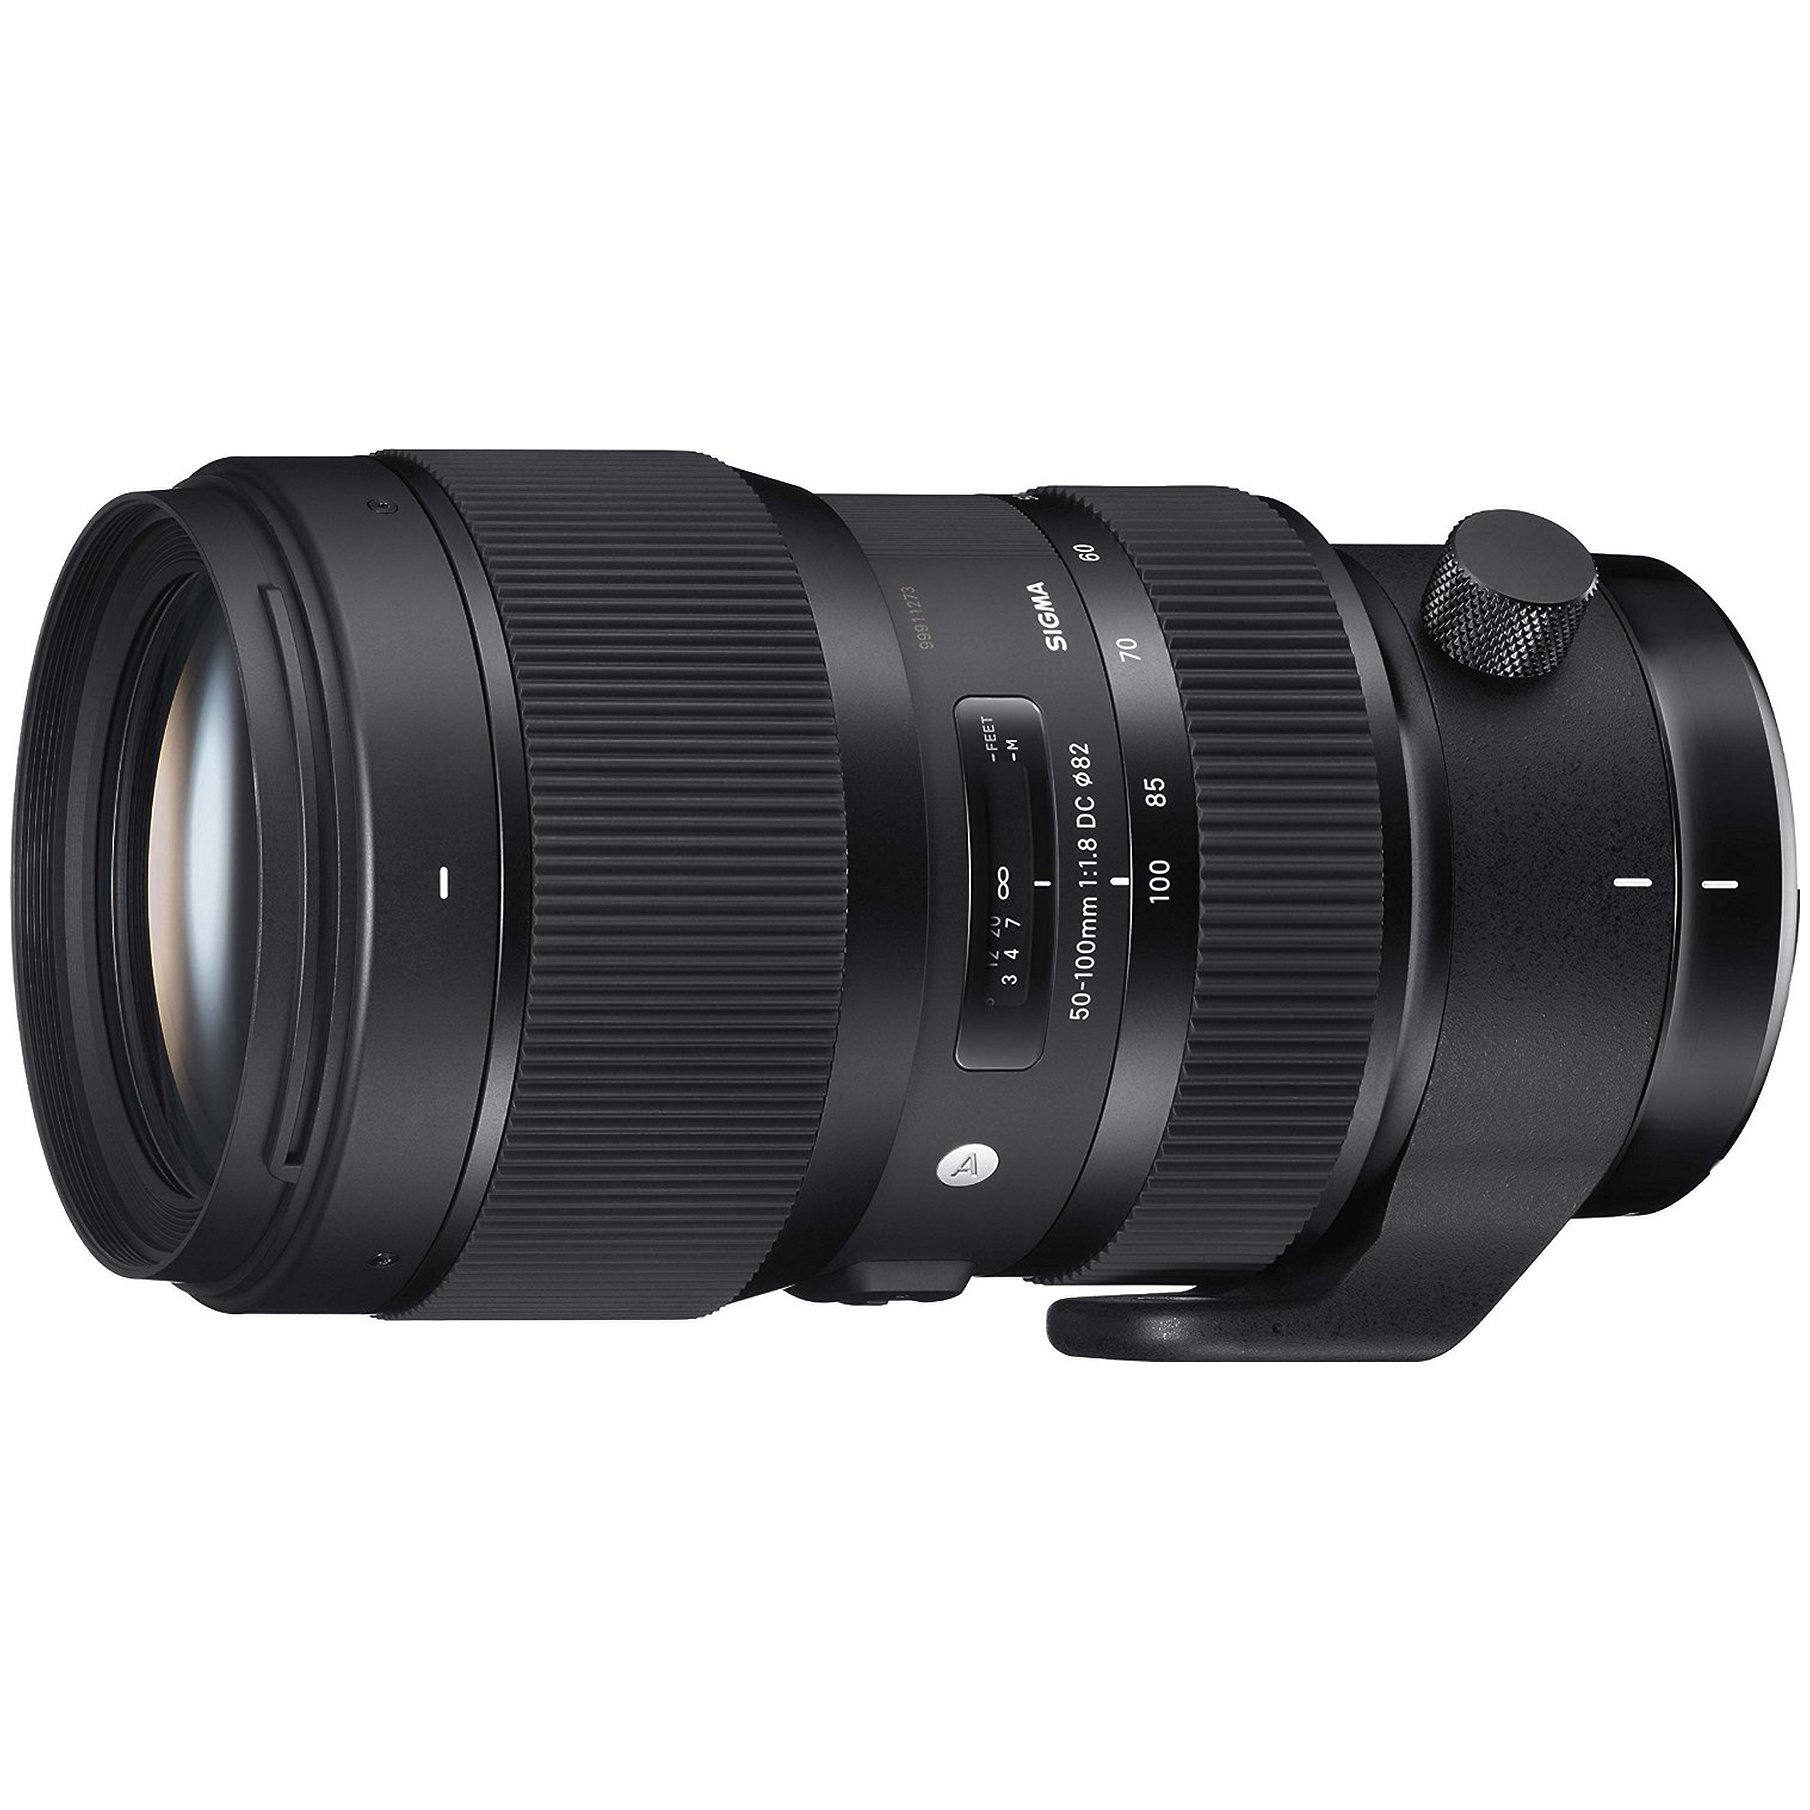 Sigma 50-100mm F1.8 DC HSM Art Lens - Nikon Fit